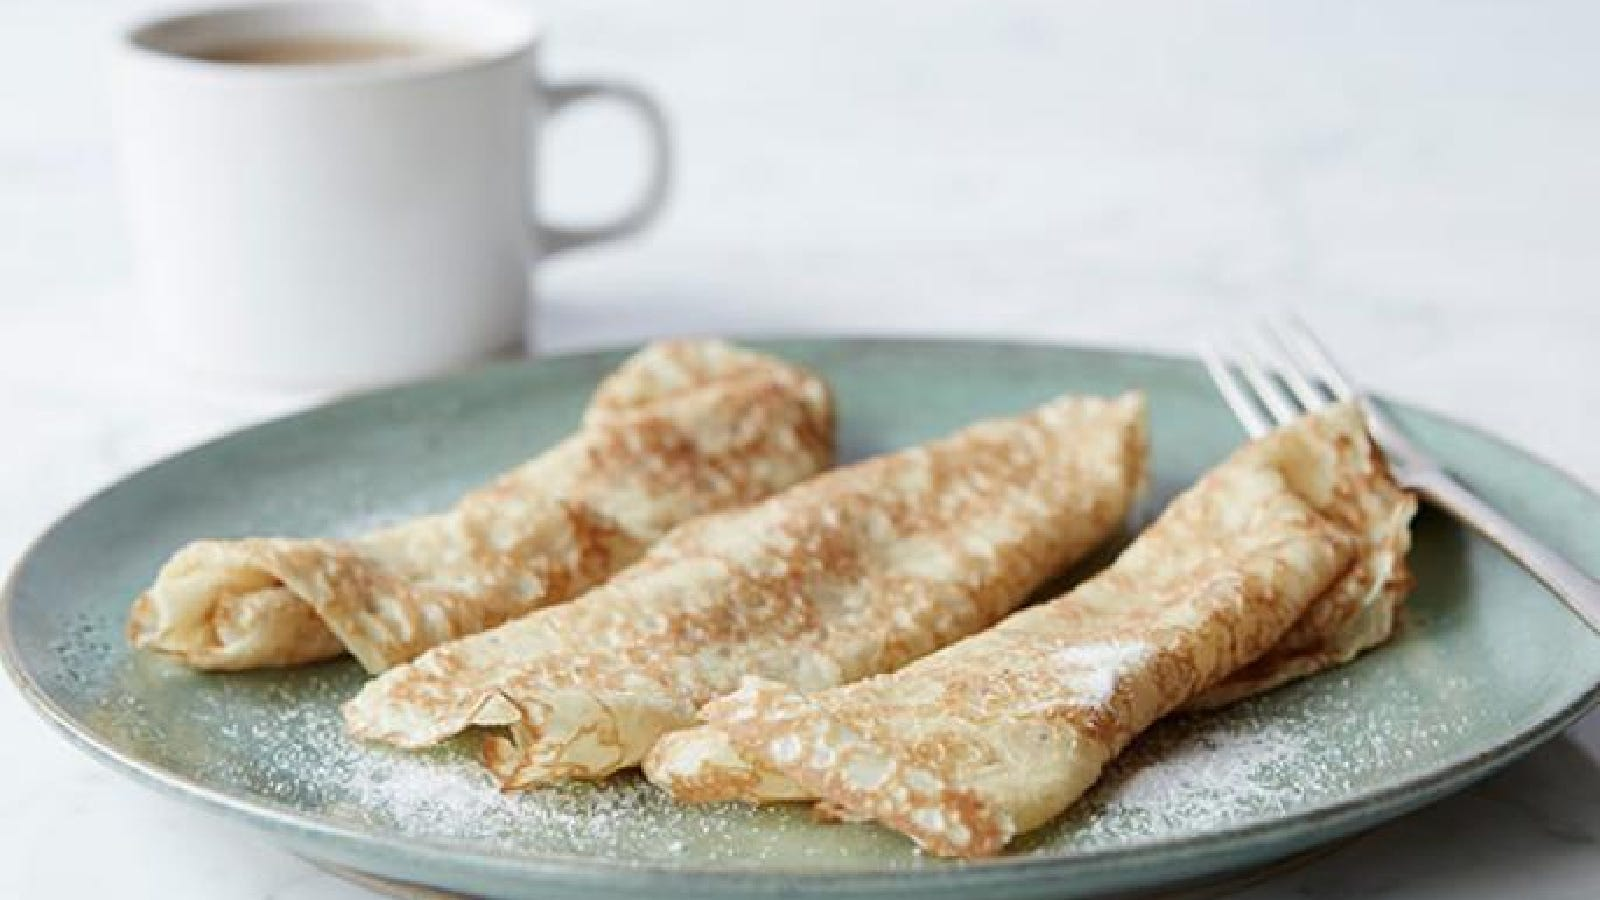 Three crêpes topped with sugar on a plate next to a coffee mug.